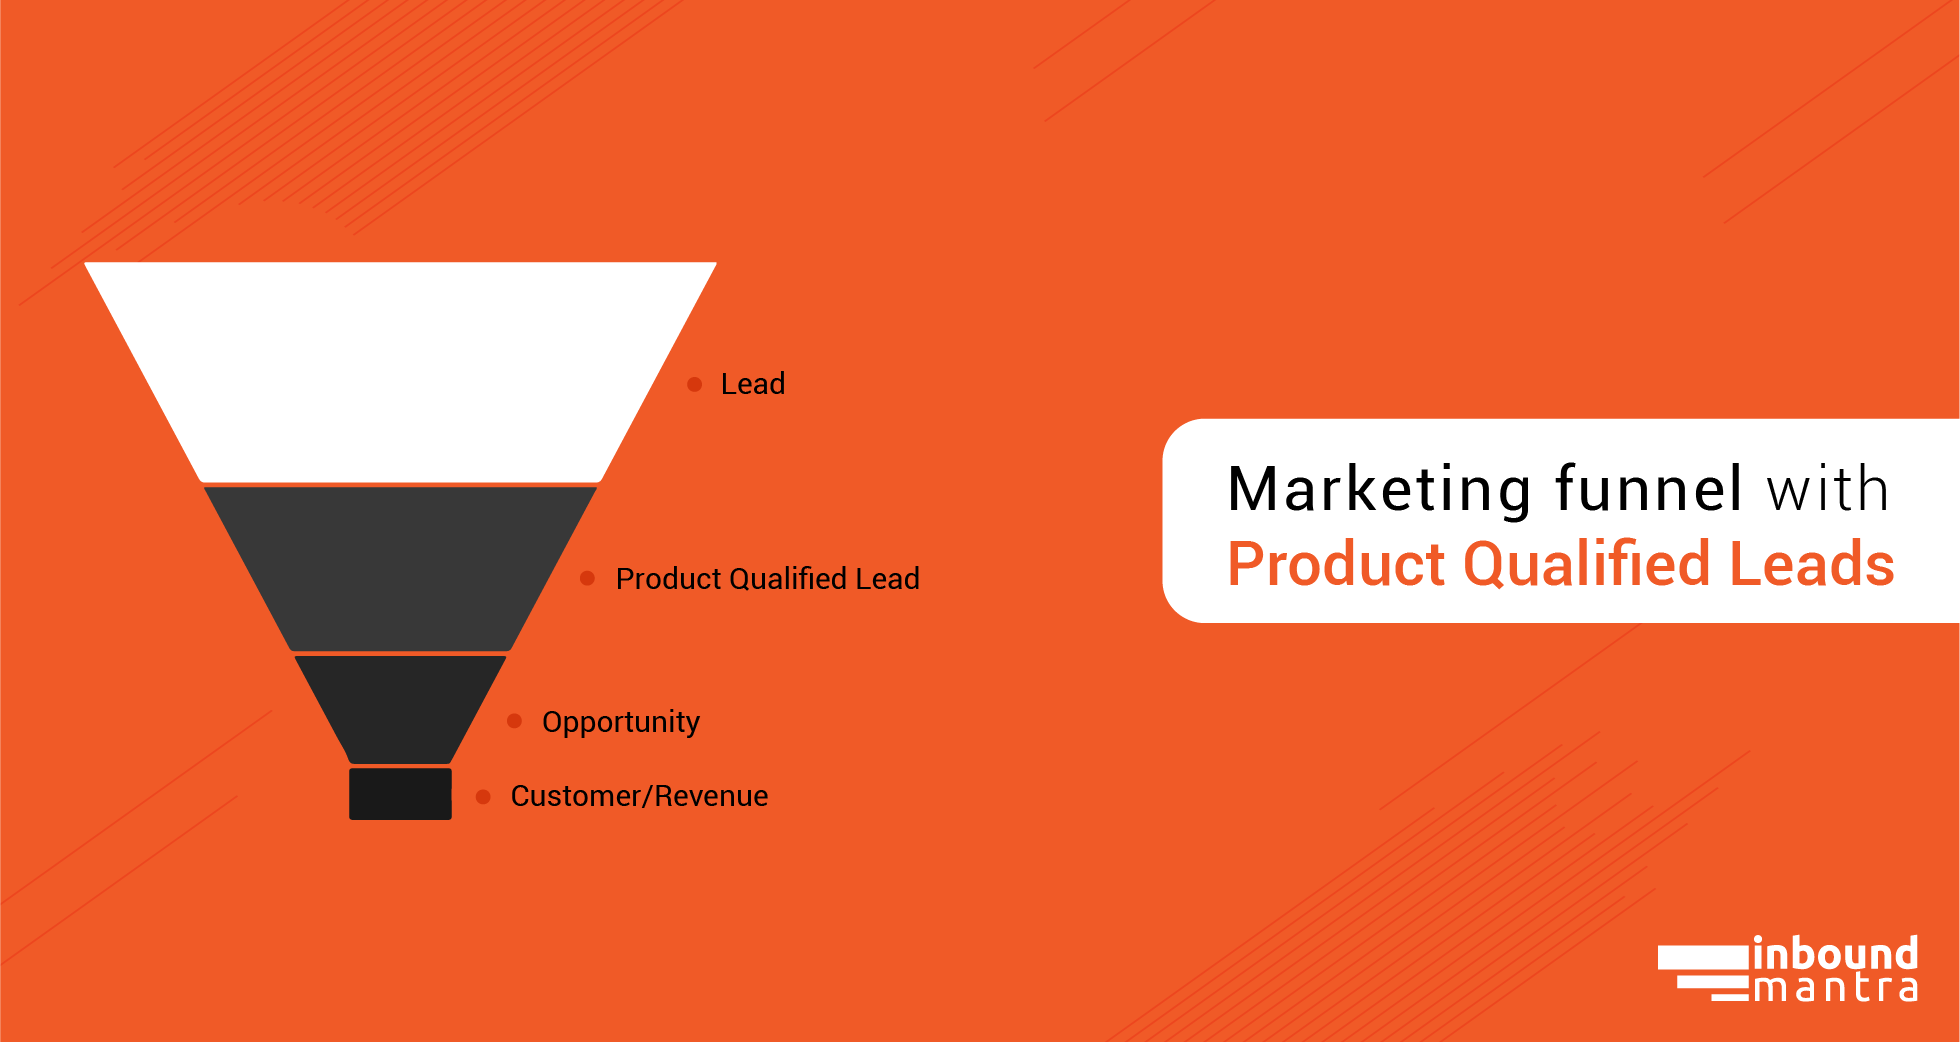 Flipping the Marketing Funnel with Product Qualified Leads